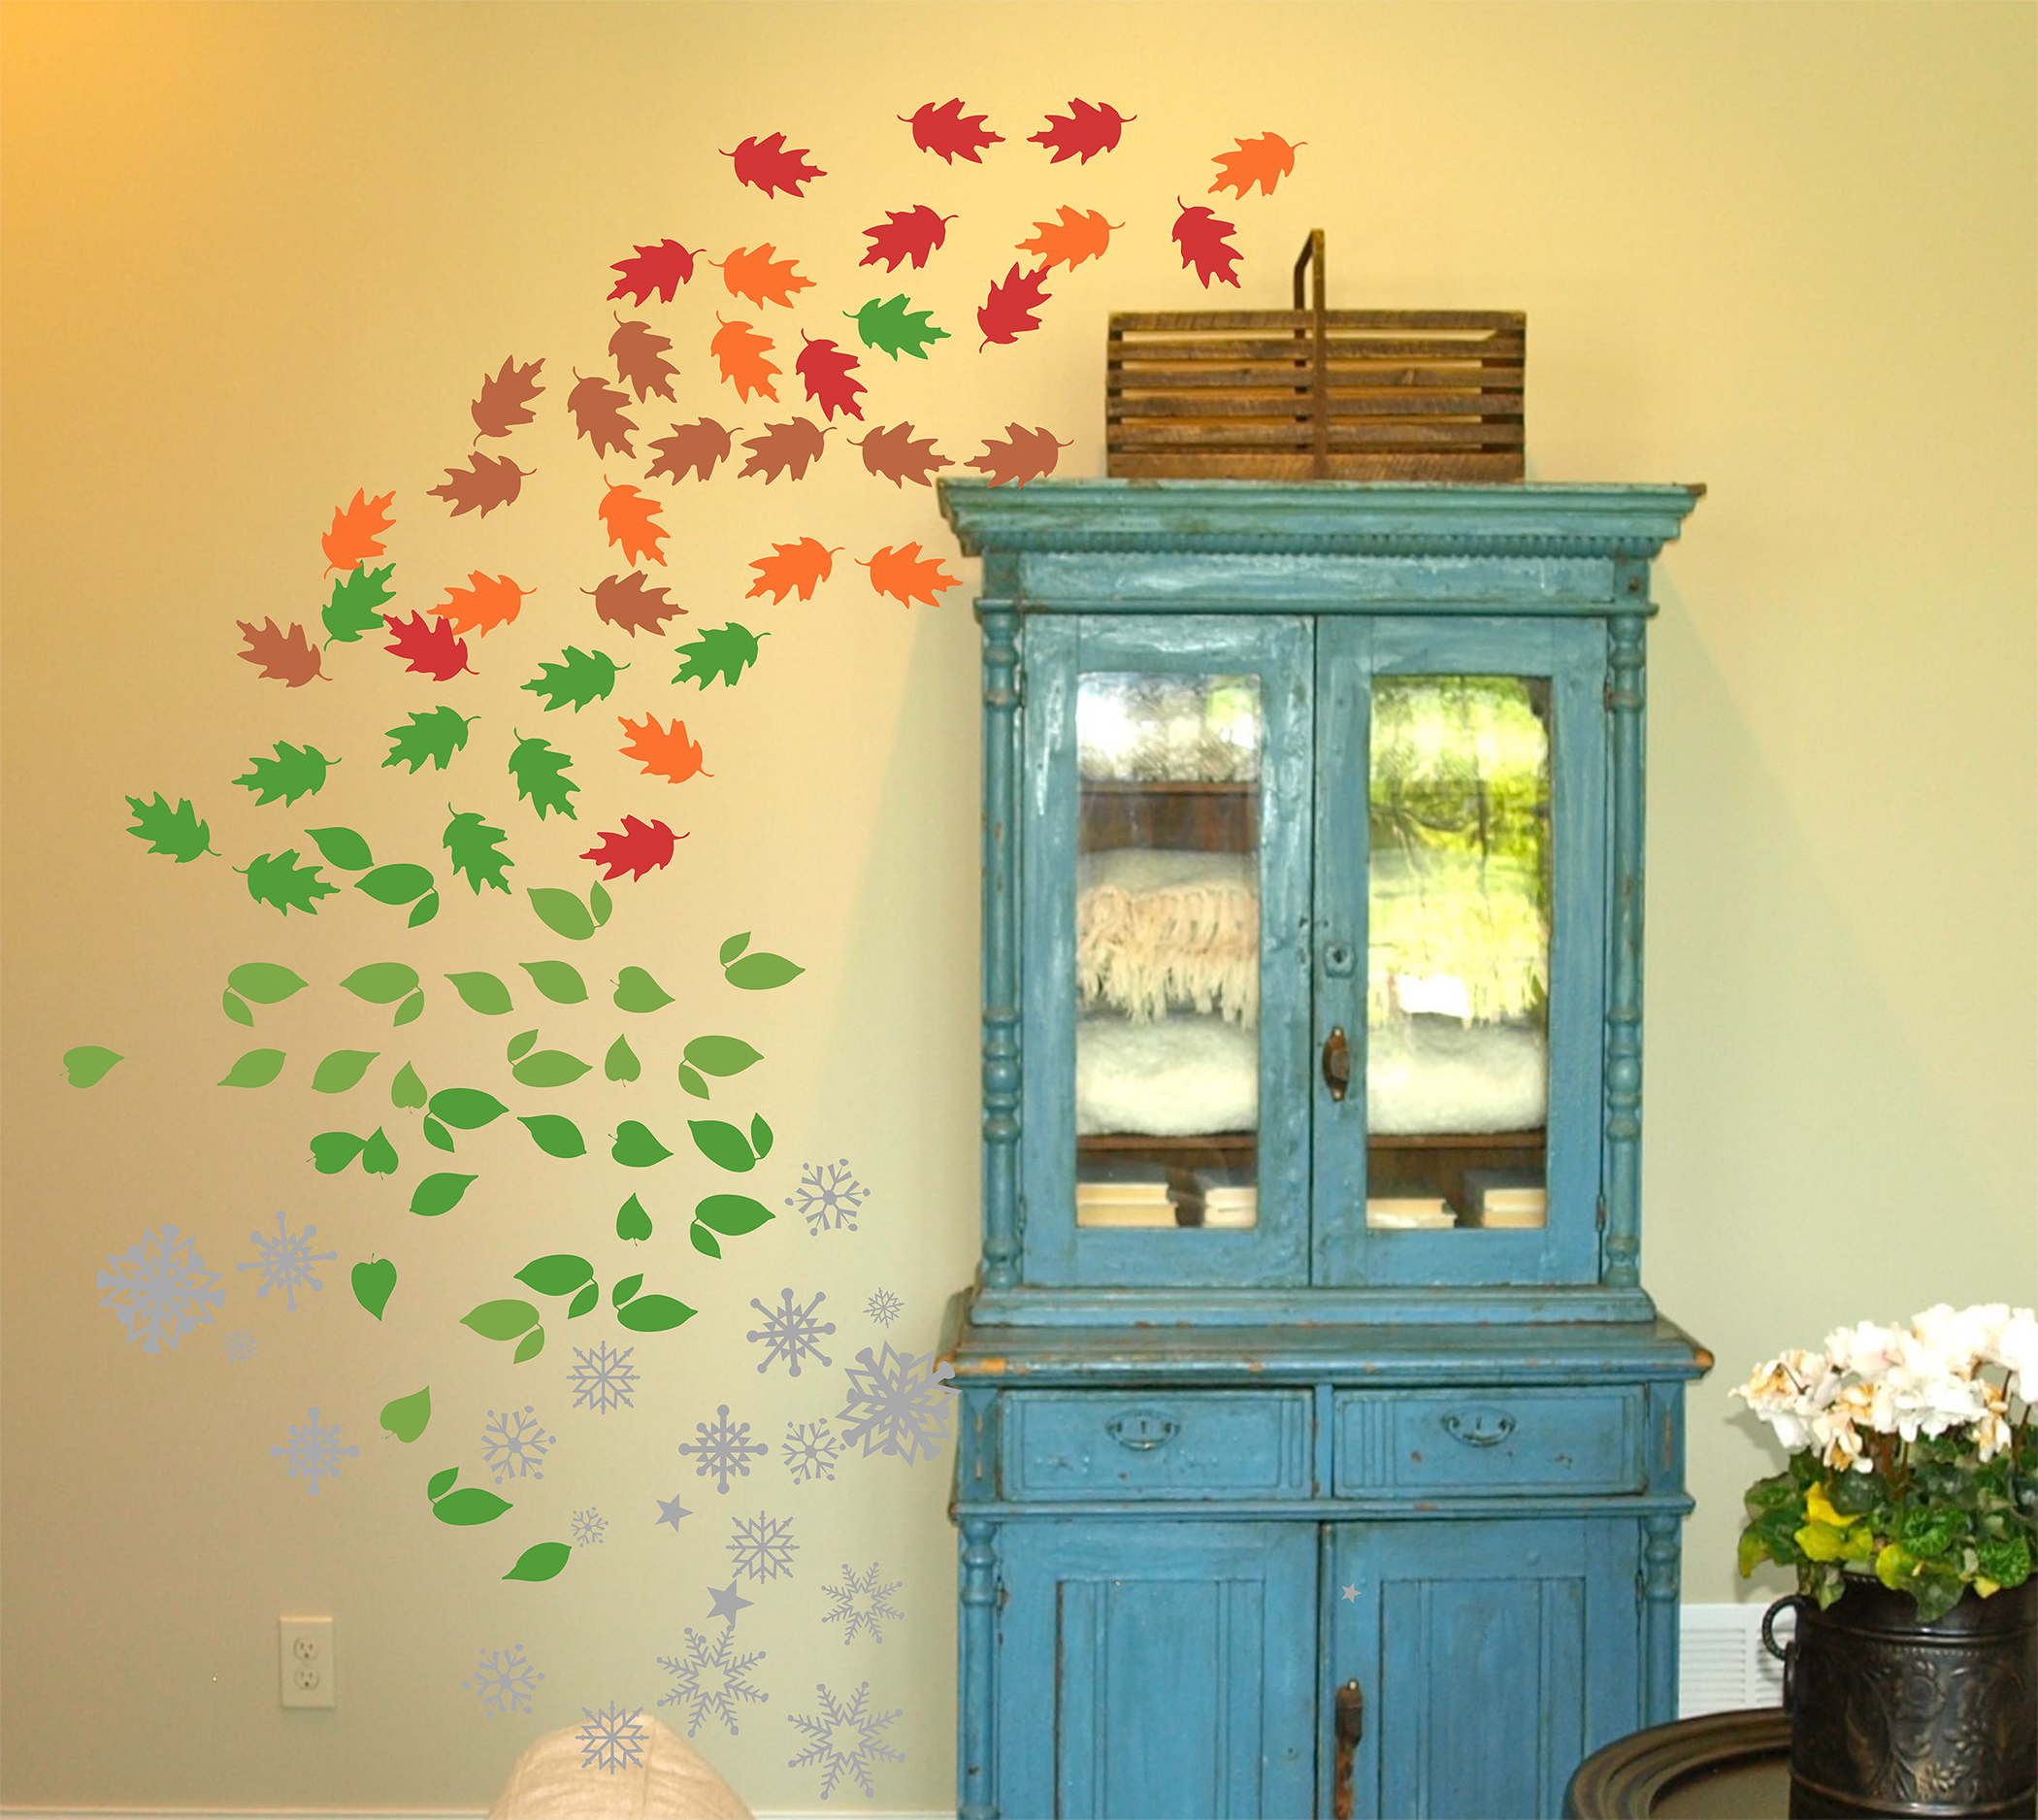 Seasonal Trees Extra Leaves Wall Decal